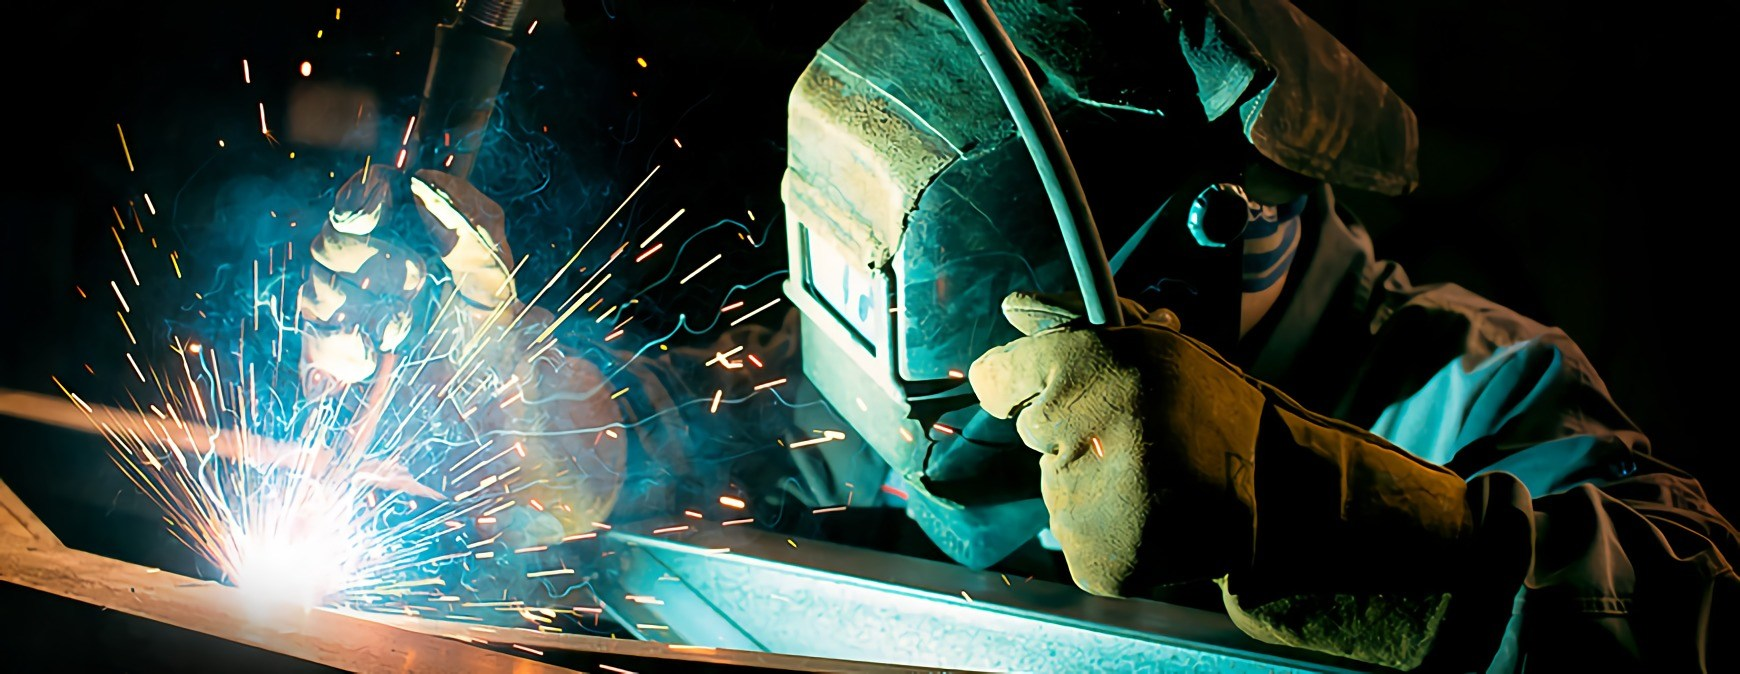 welding and hvac technician careers